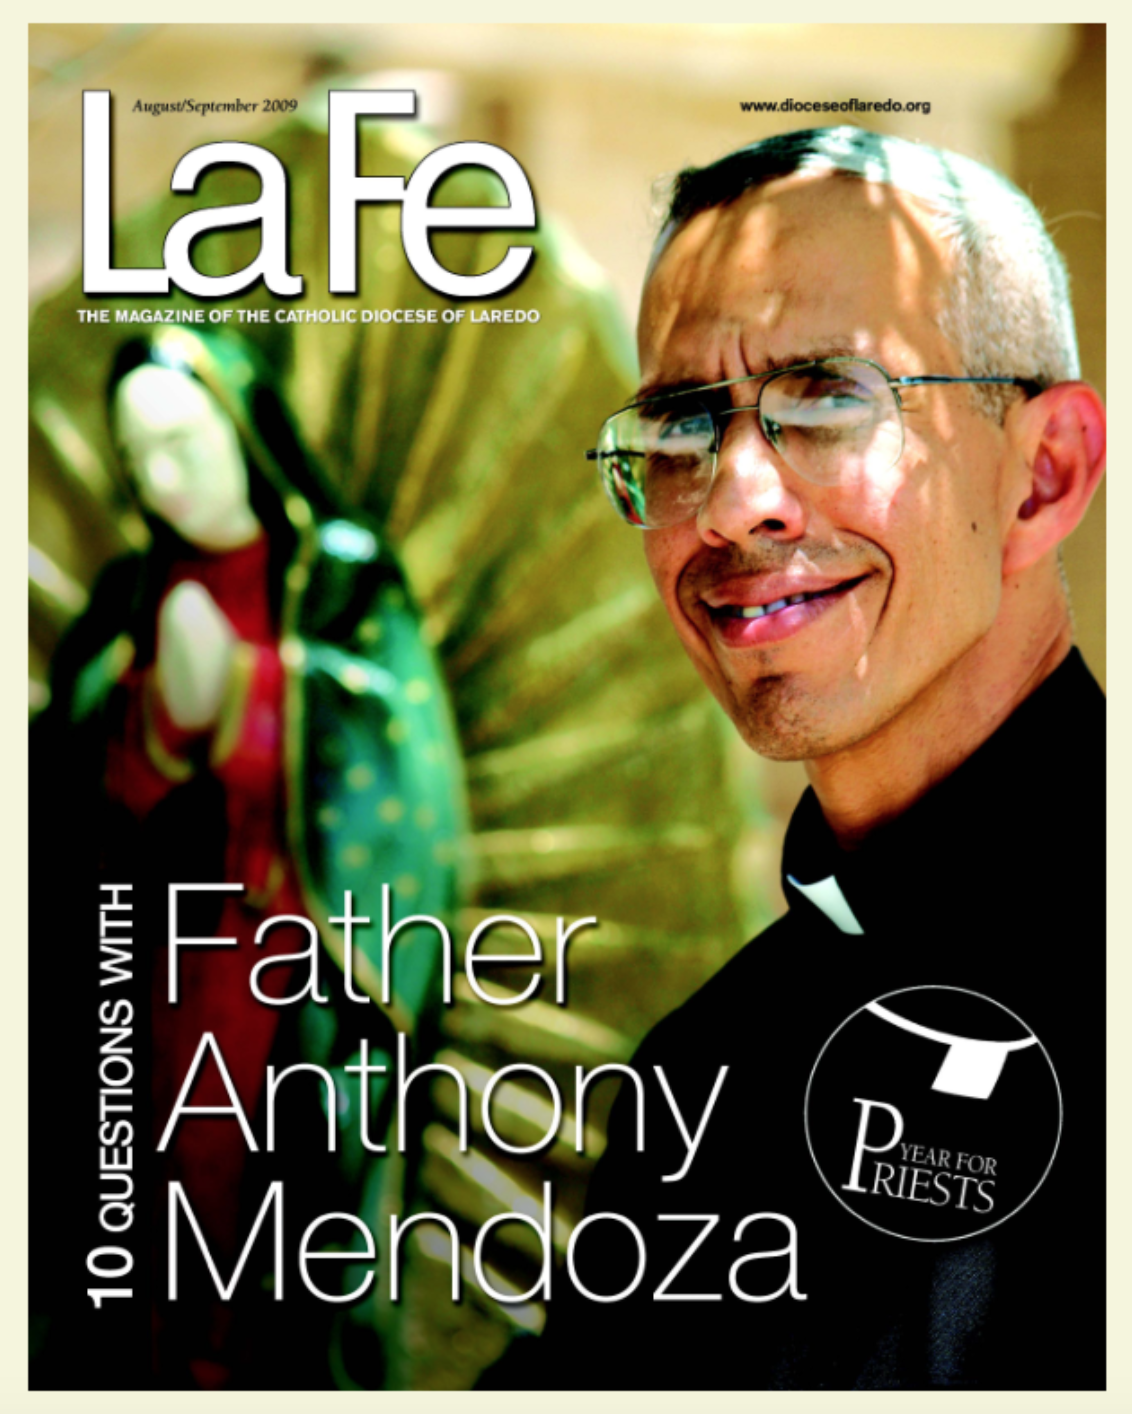 """""""I have known Juan Galvan for many years as a faithful Catholic who is deeply interested in helping heal emotionally and psychologically wounded families. He collaborated well with me in a presentation we gave on the profound needs of foster children. May God continue to bless his ministry!""""   - Reverend Anthony Mendoza    Vicar General & Roman Catholic Priest    Roman Catholic Diocese of Laredo"""